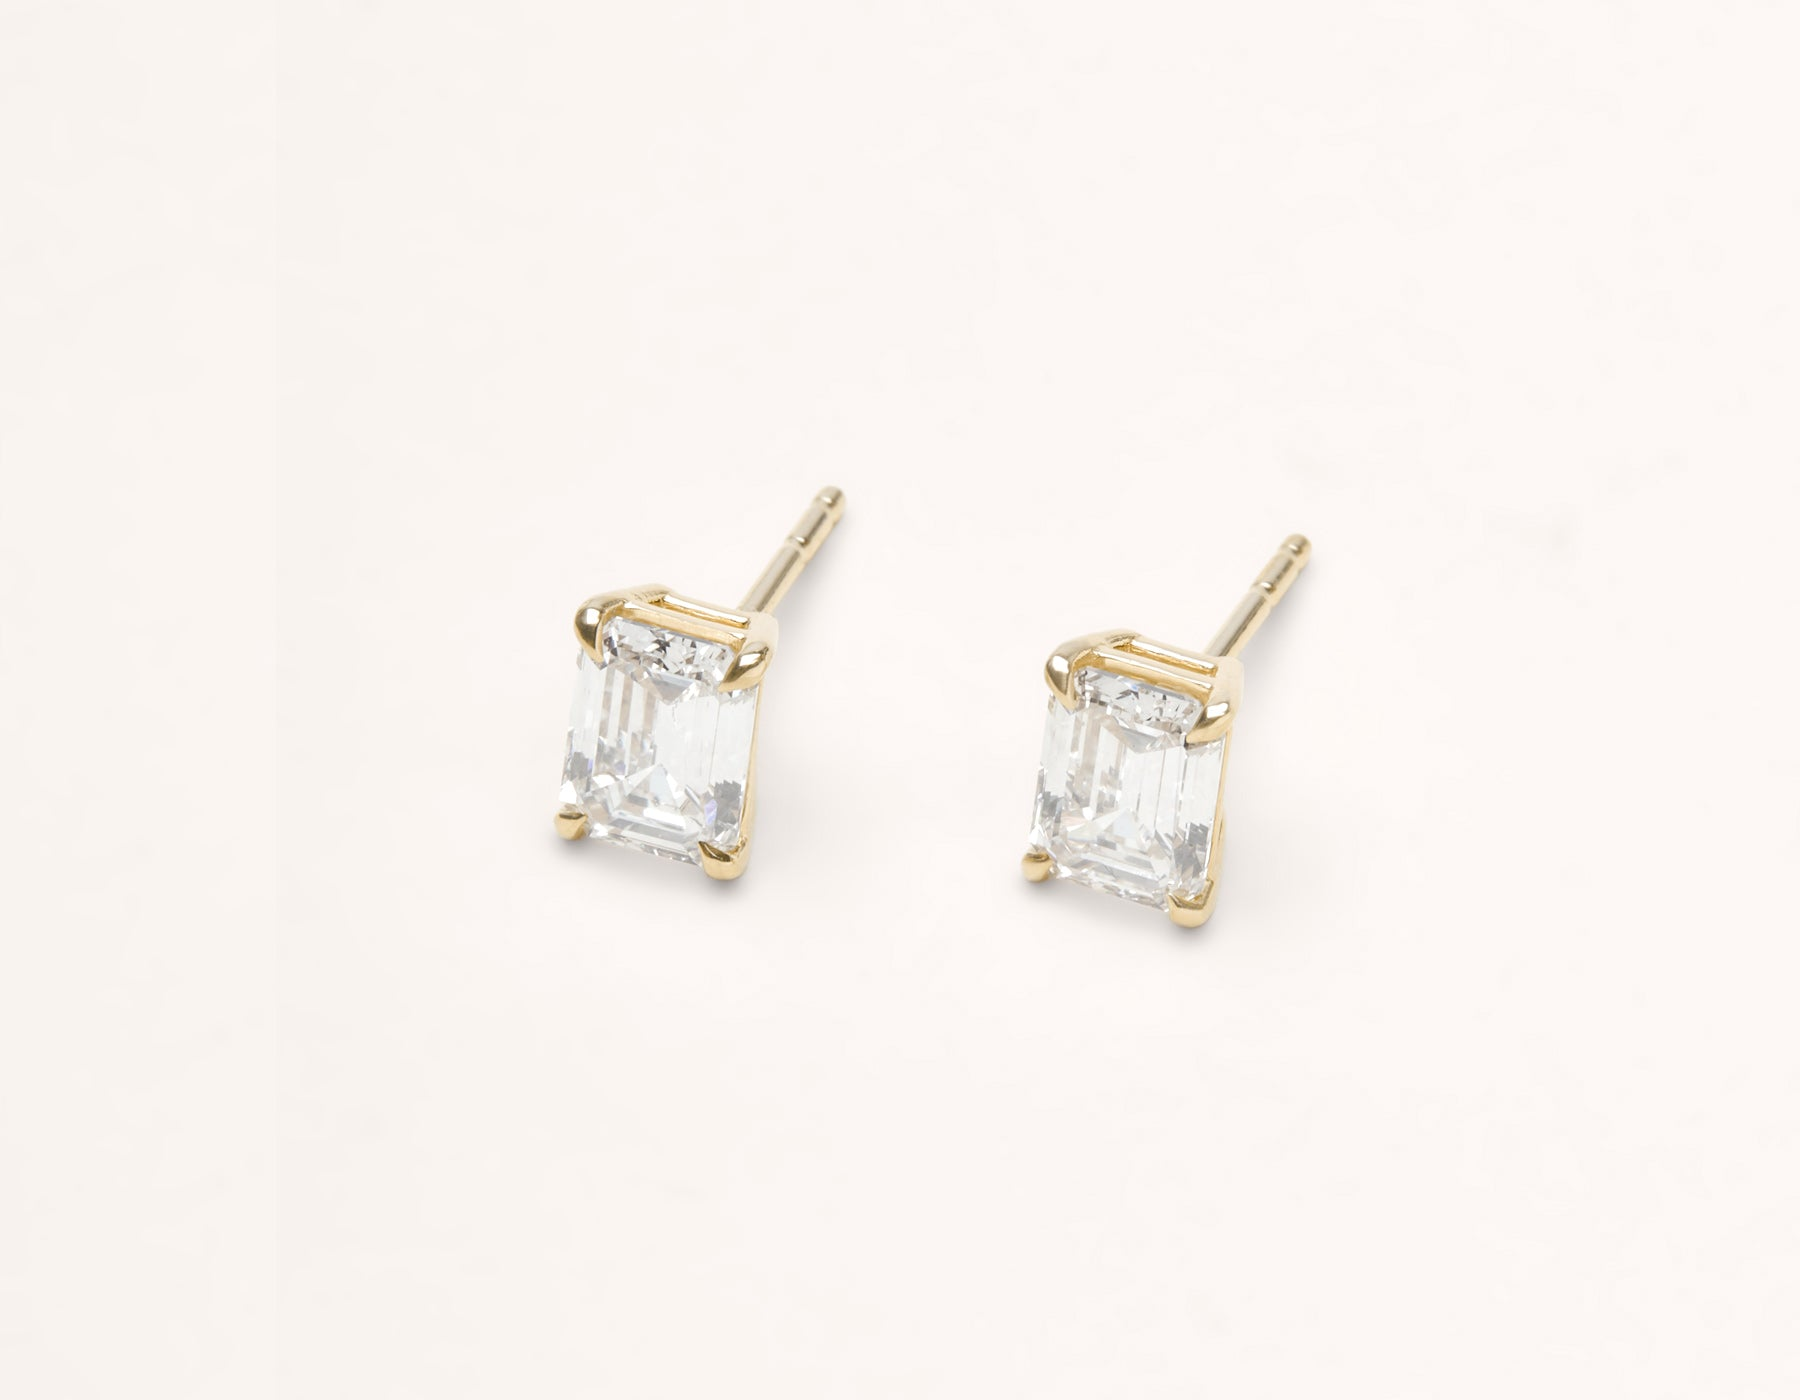 e38094d32 modern minimalist 18k solid gold 1 ct Emerald Studs diamond earrings by  Vrai & Oro,